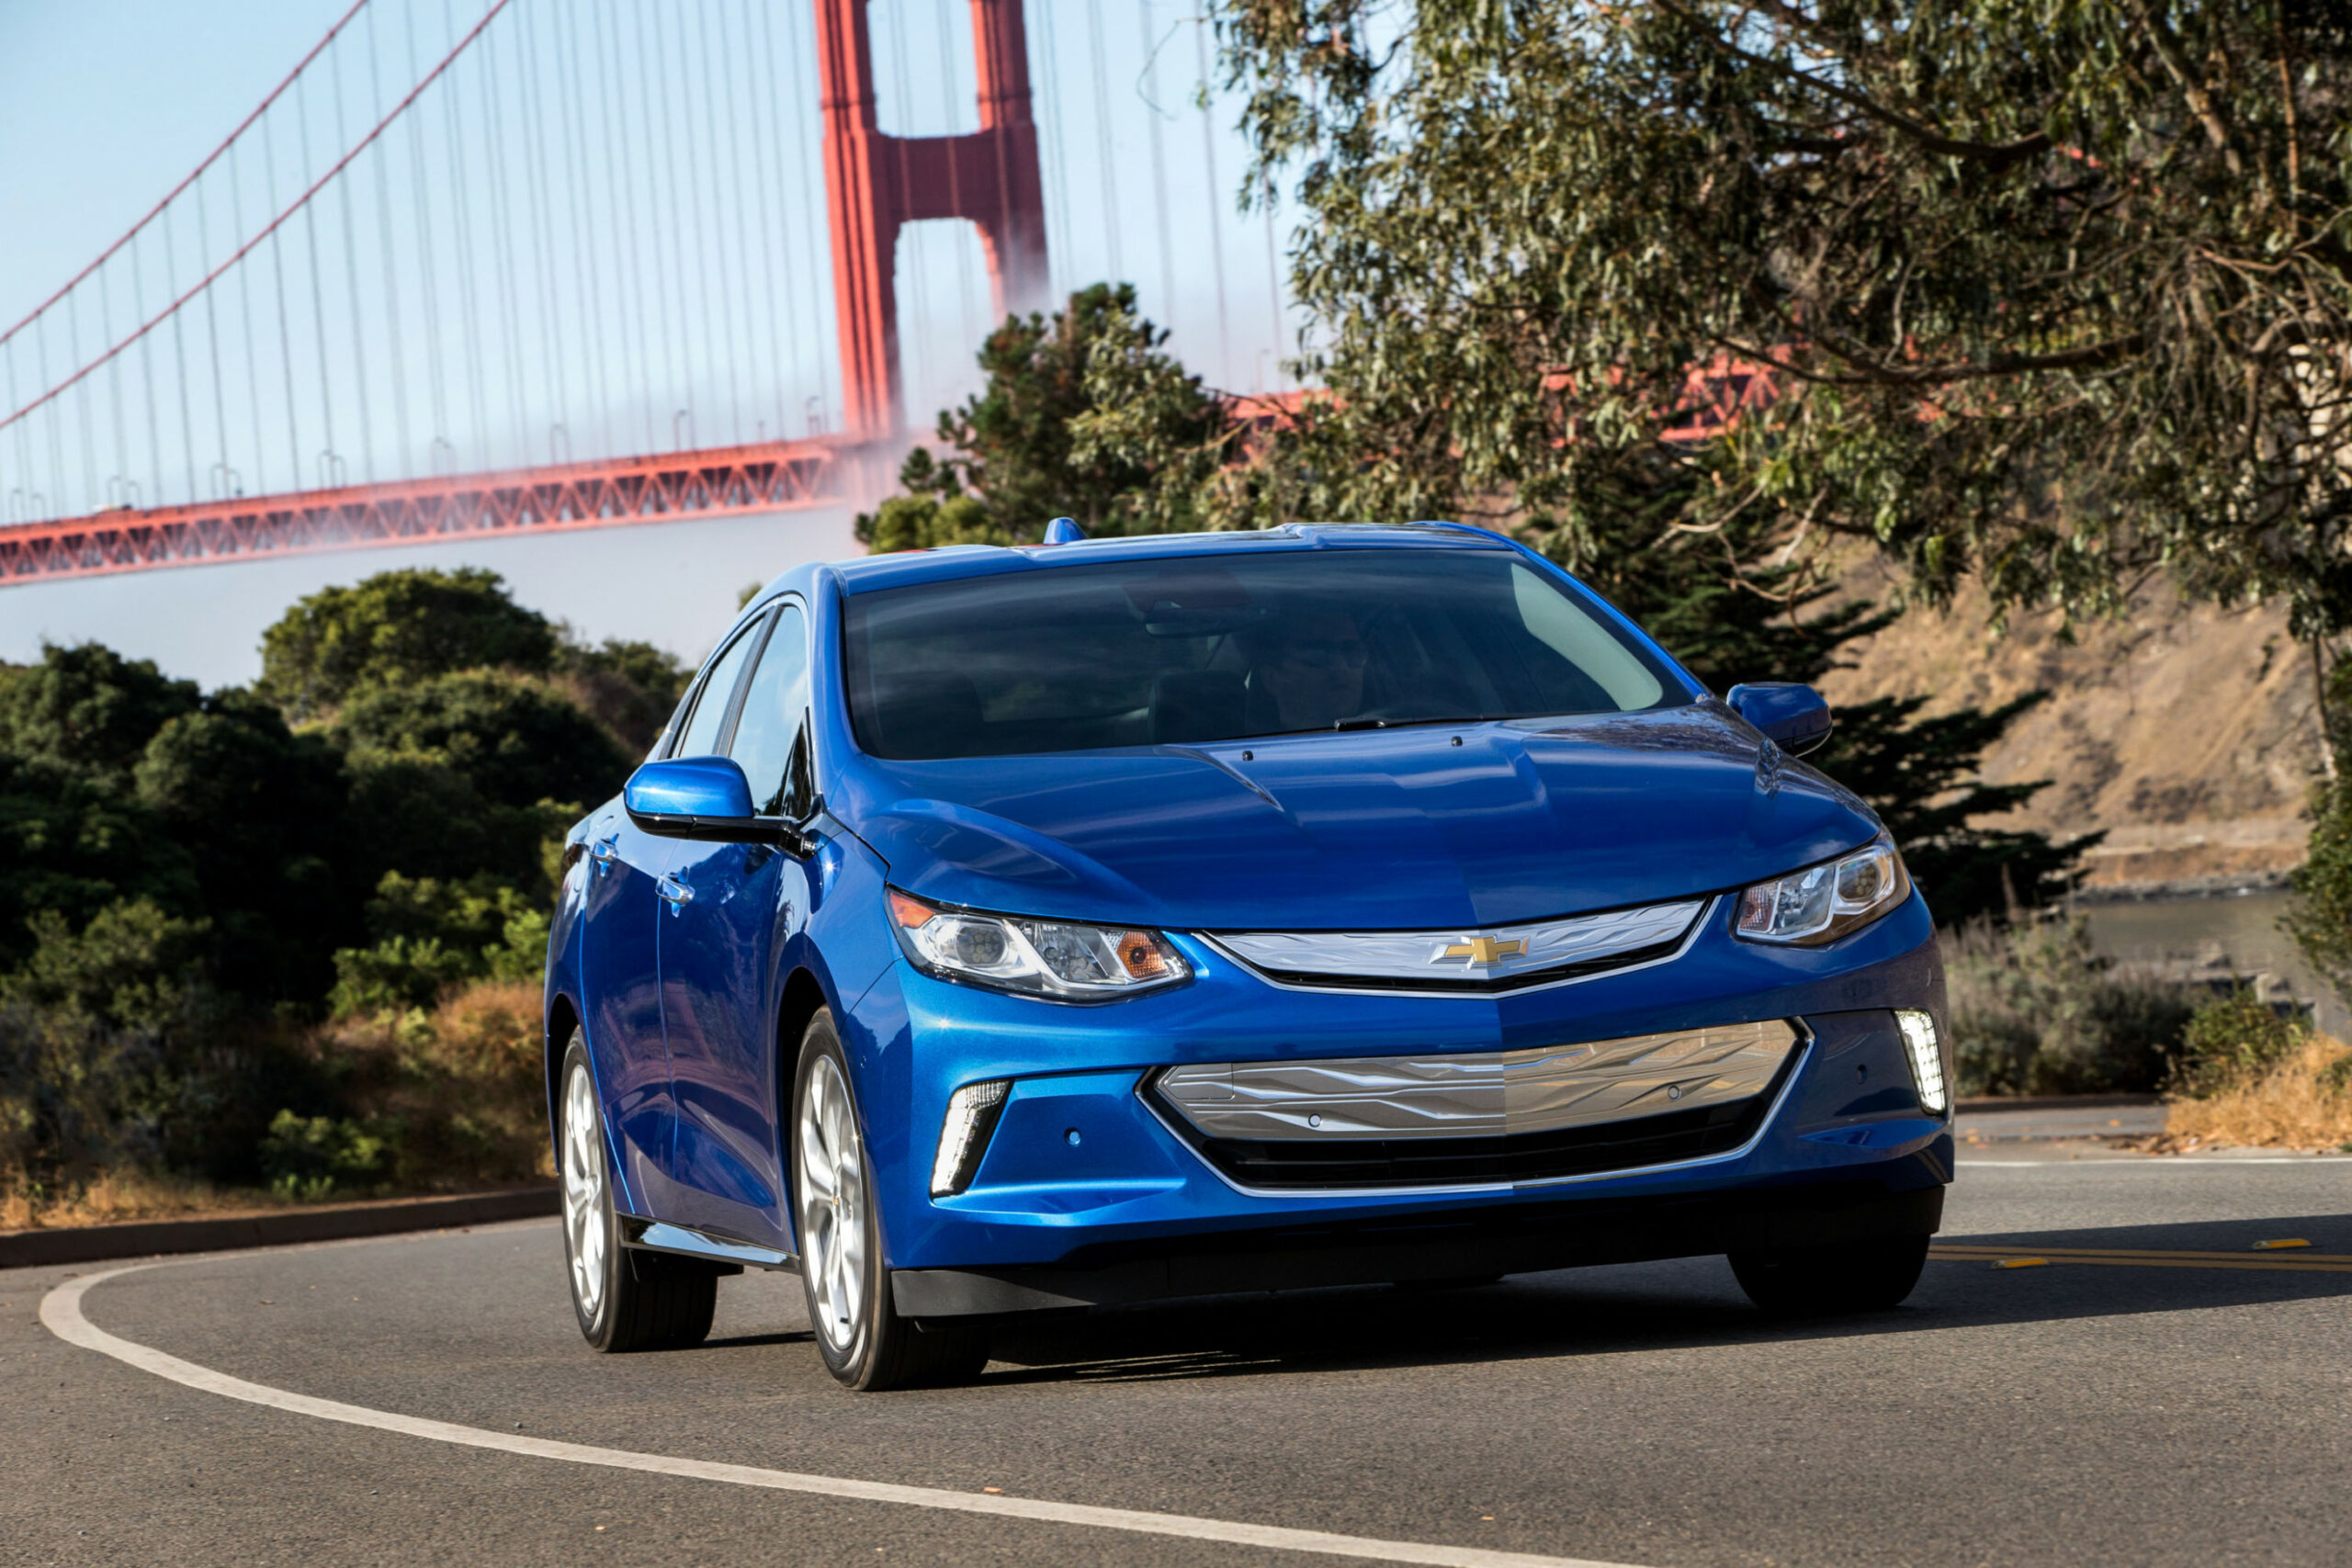 Review 2022 Chevy Volt